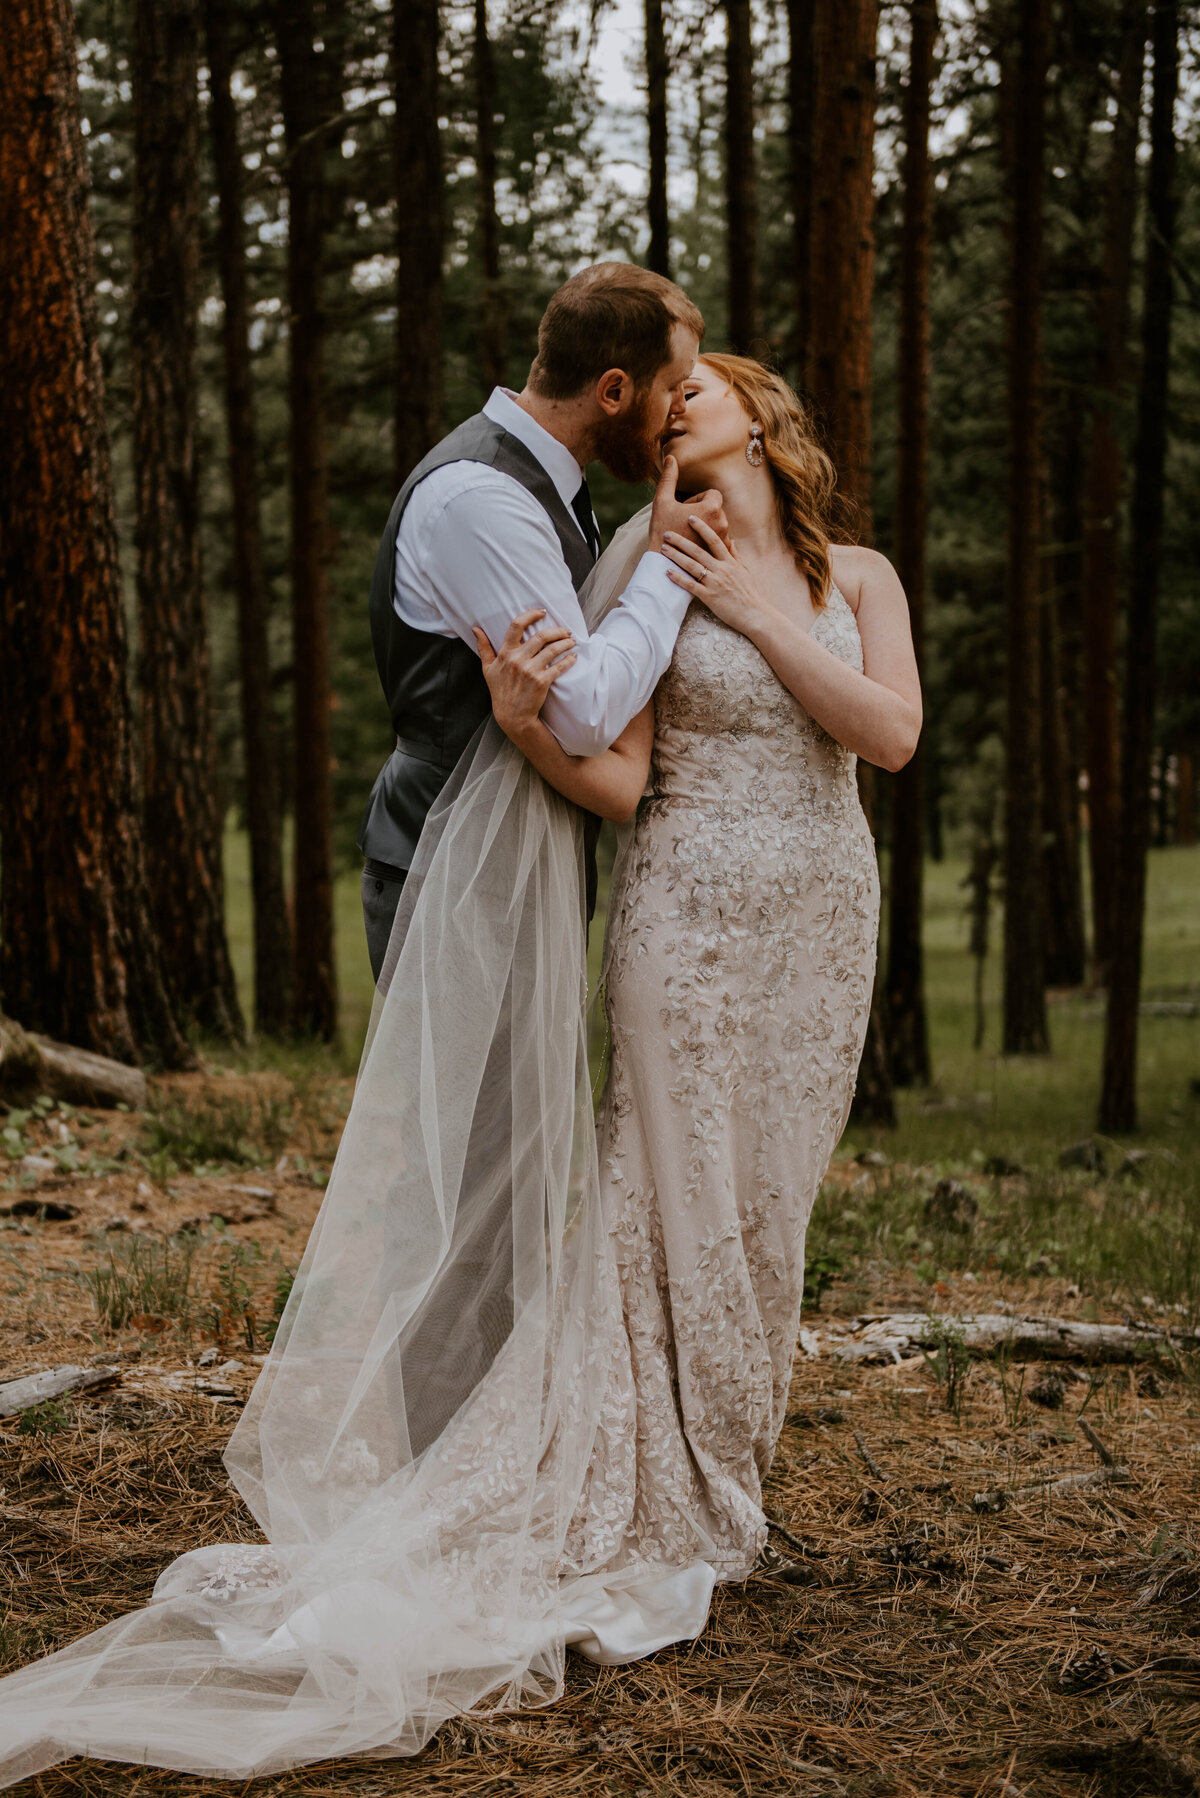 ochoco-forest-central-oregon-elopement-pnw-woods-wedding-covid-bend-photographer-inspiration1665